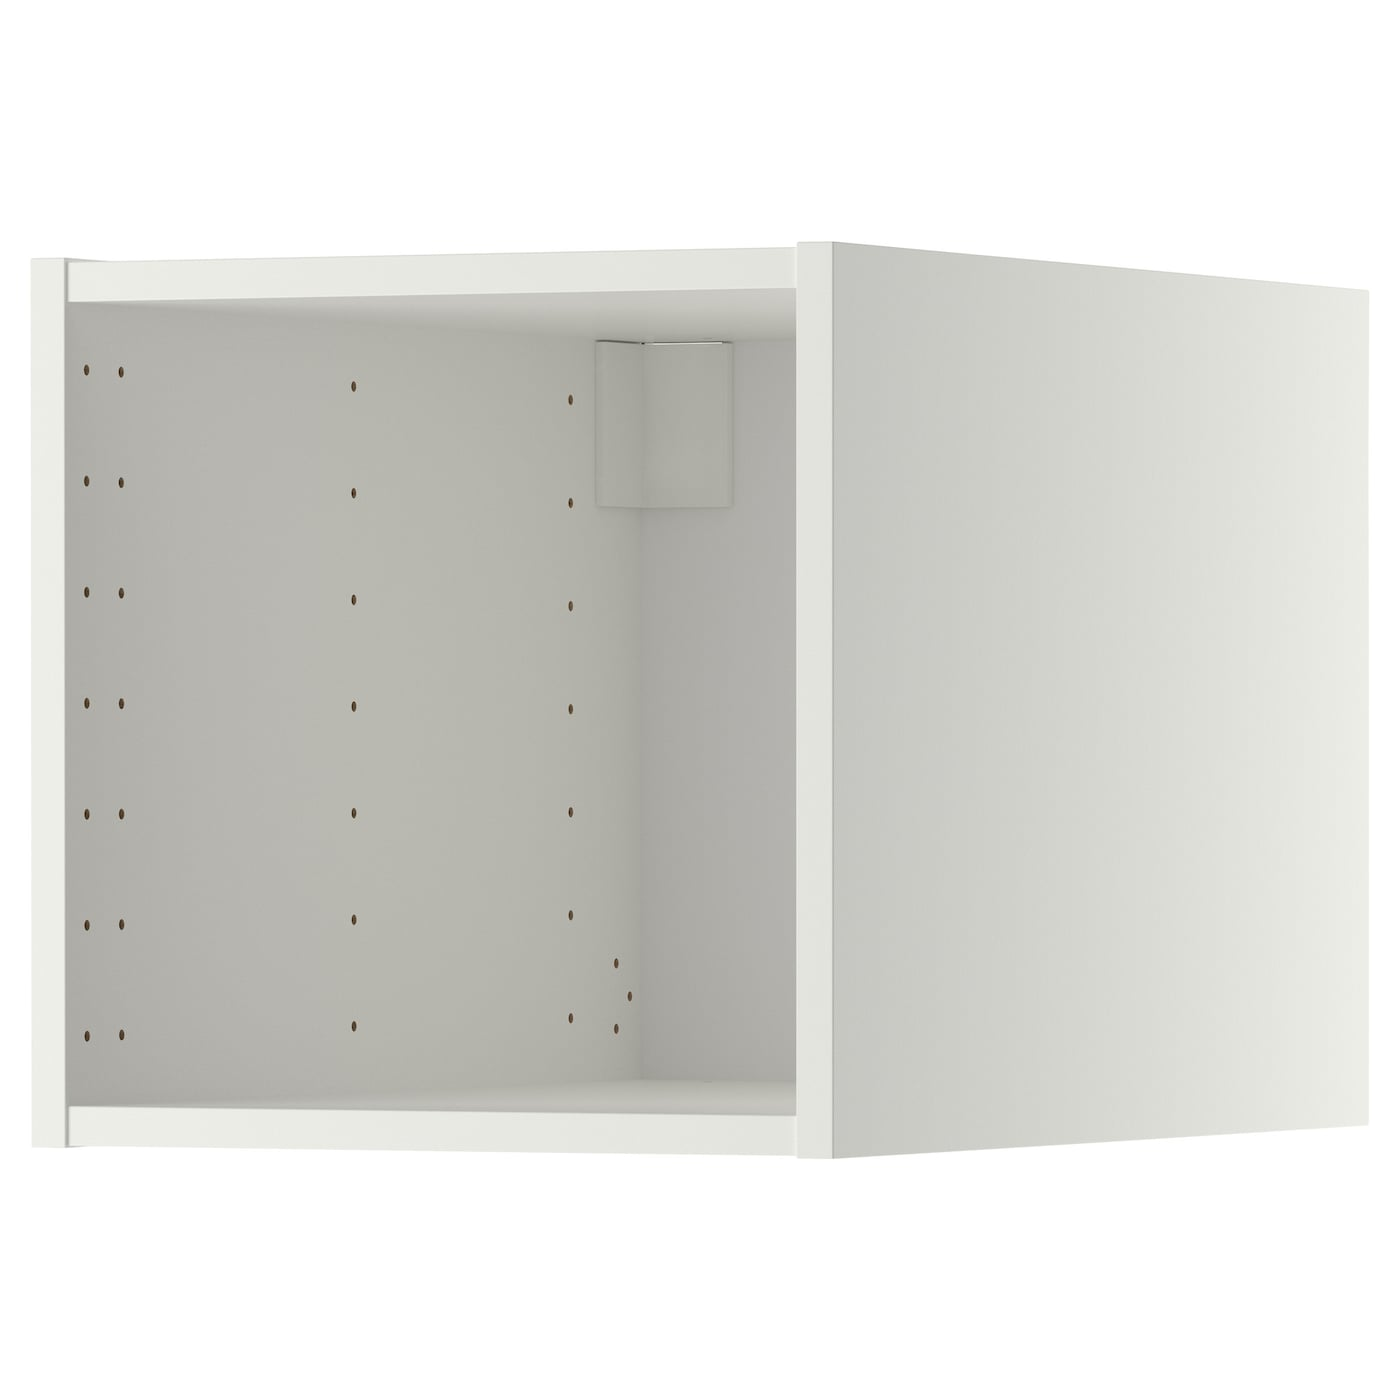 IKEA METOD top cabinet Sturdy frame construction, 18 mm thick.